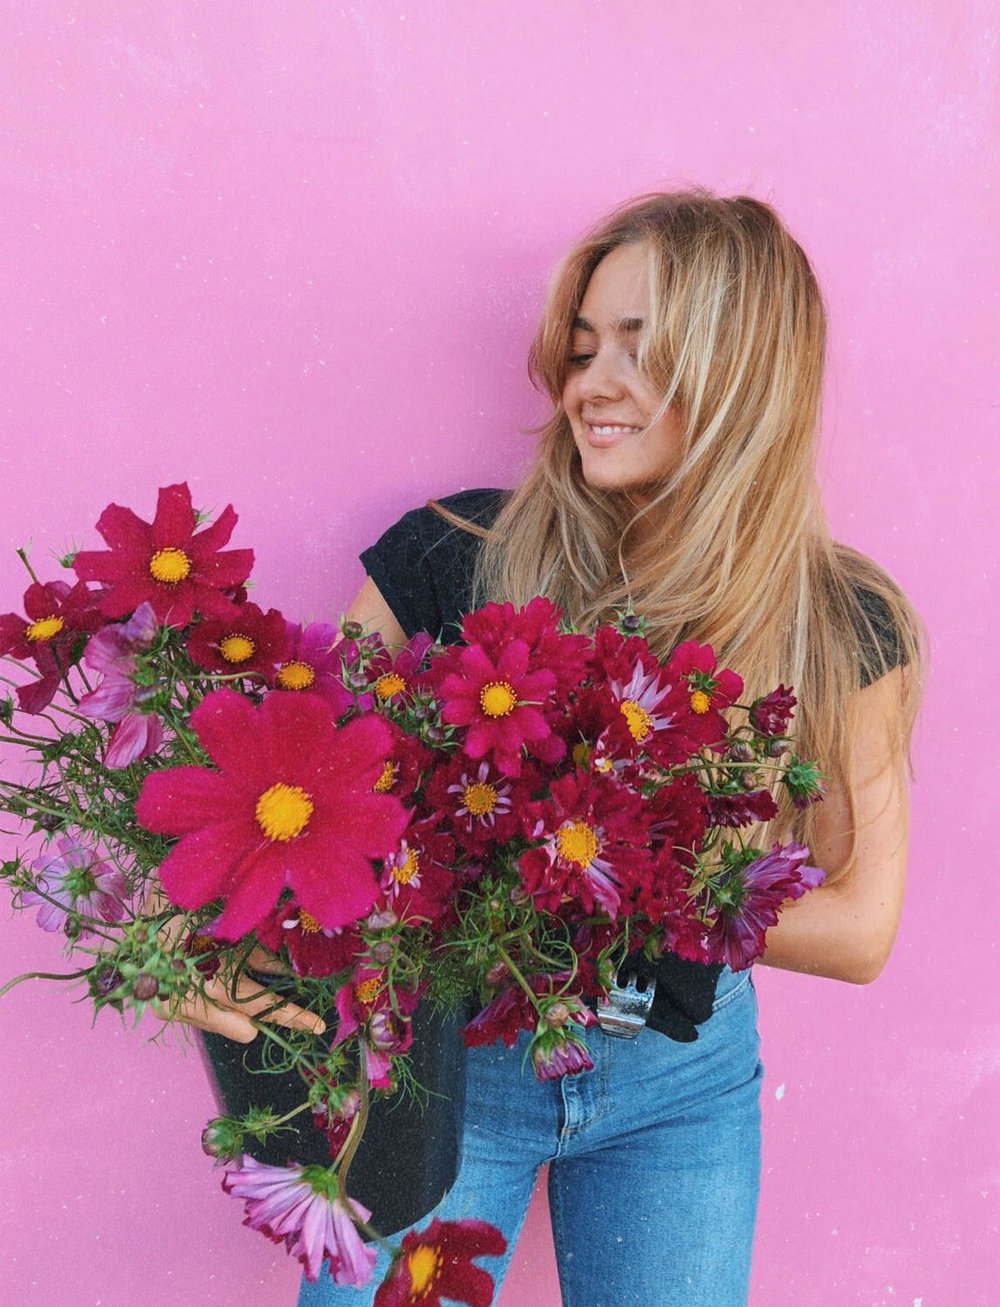 Behind The Blooms -